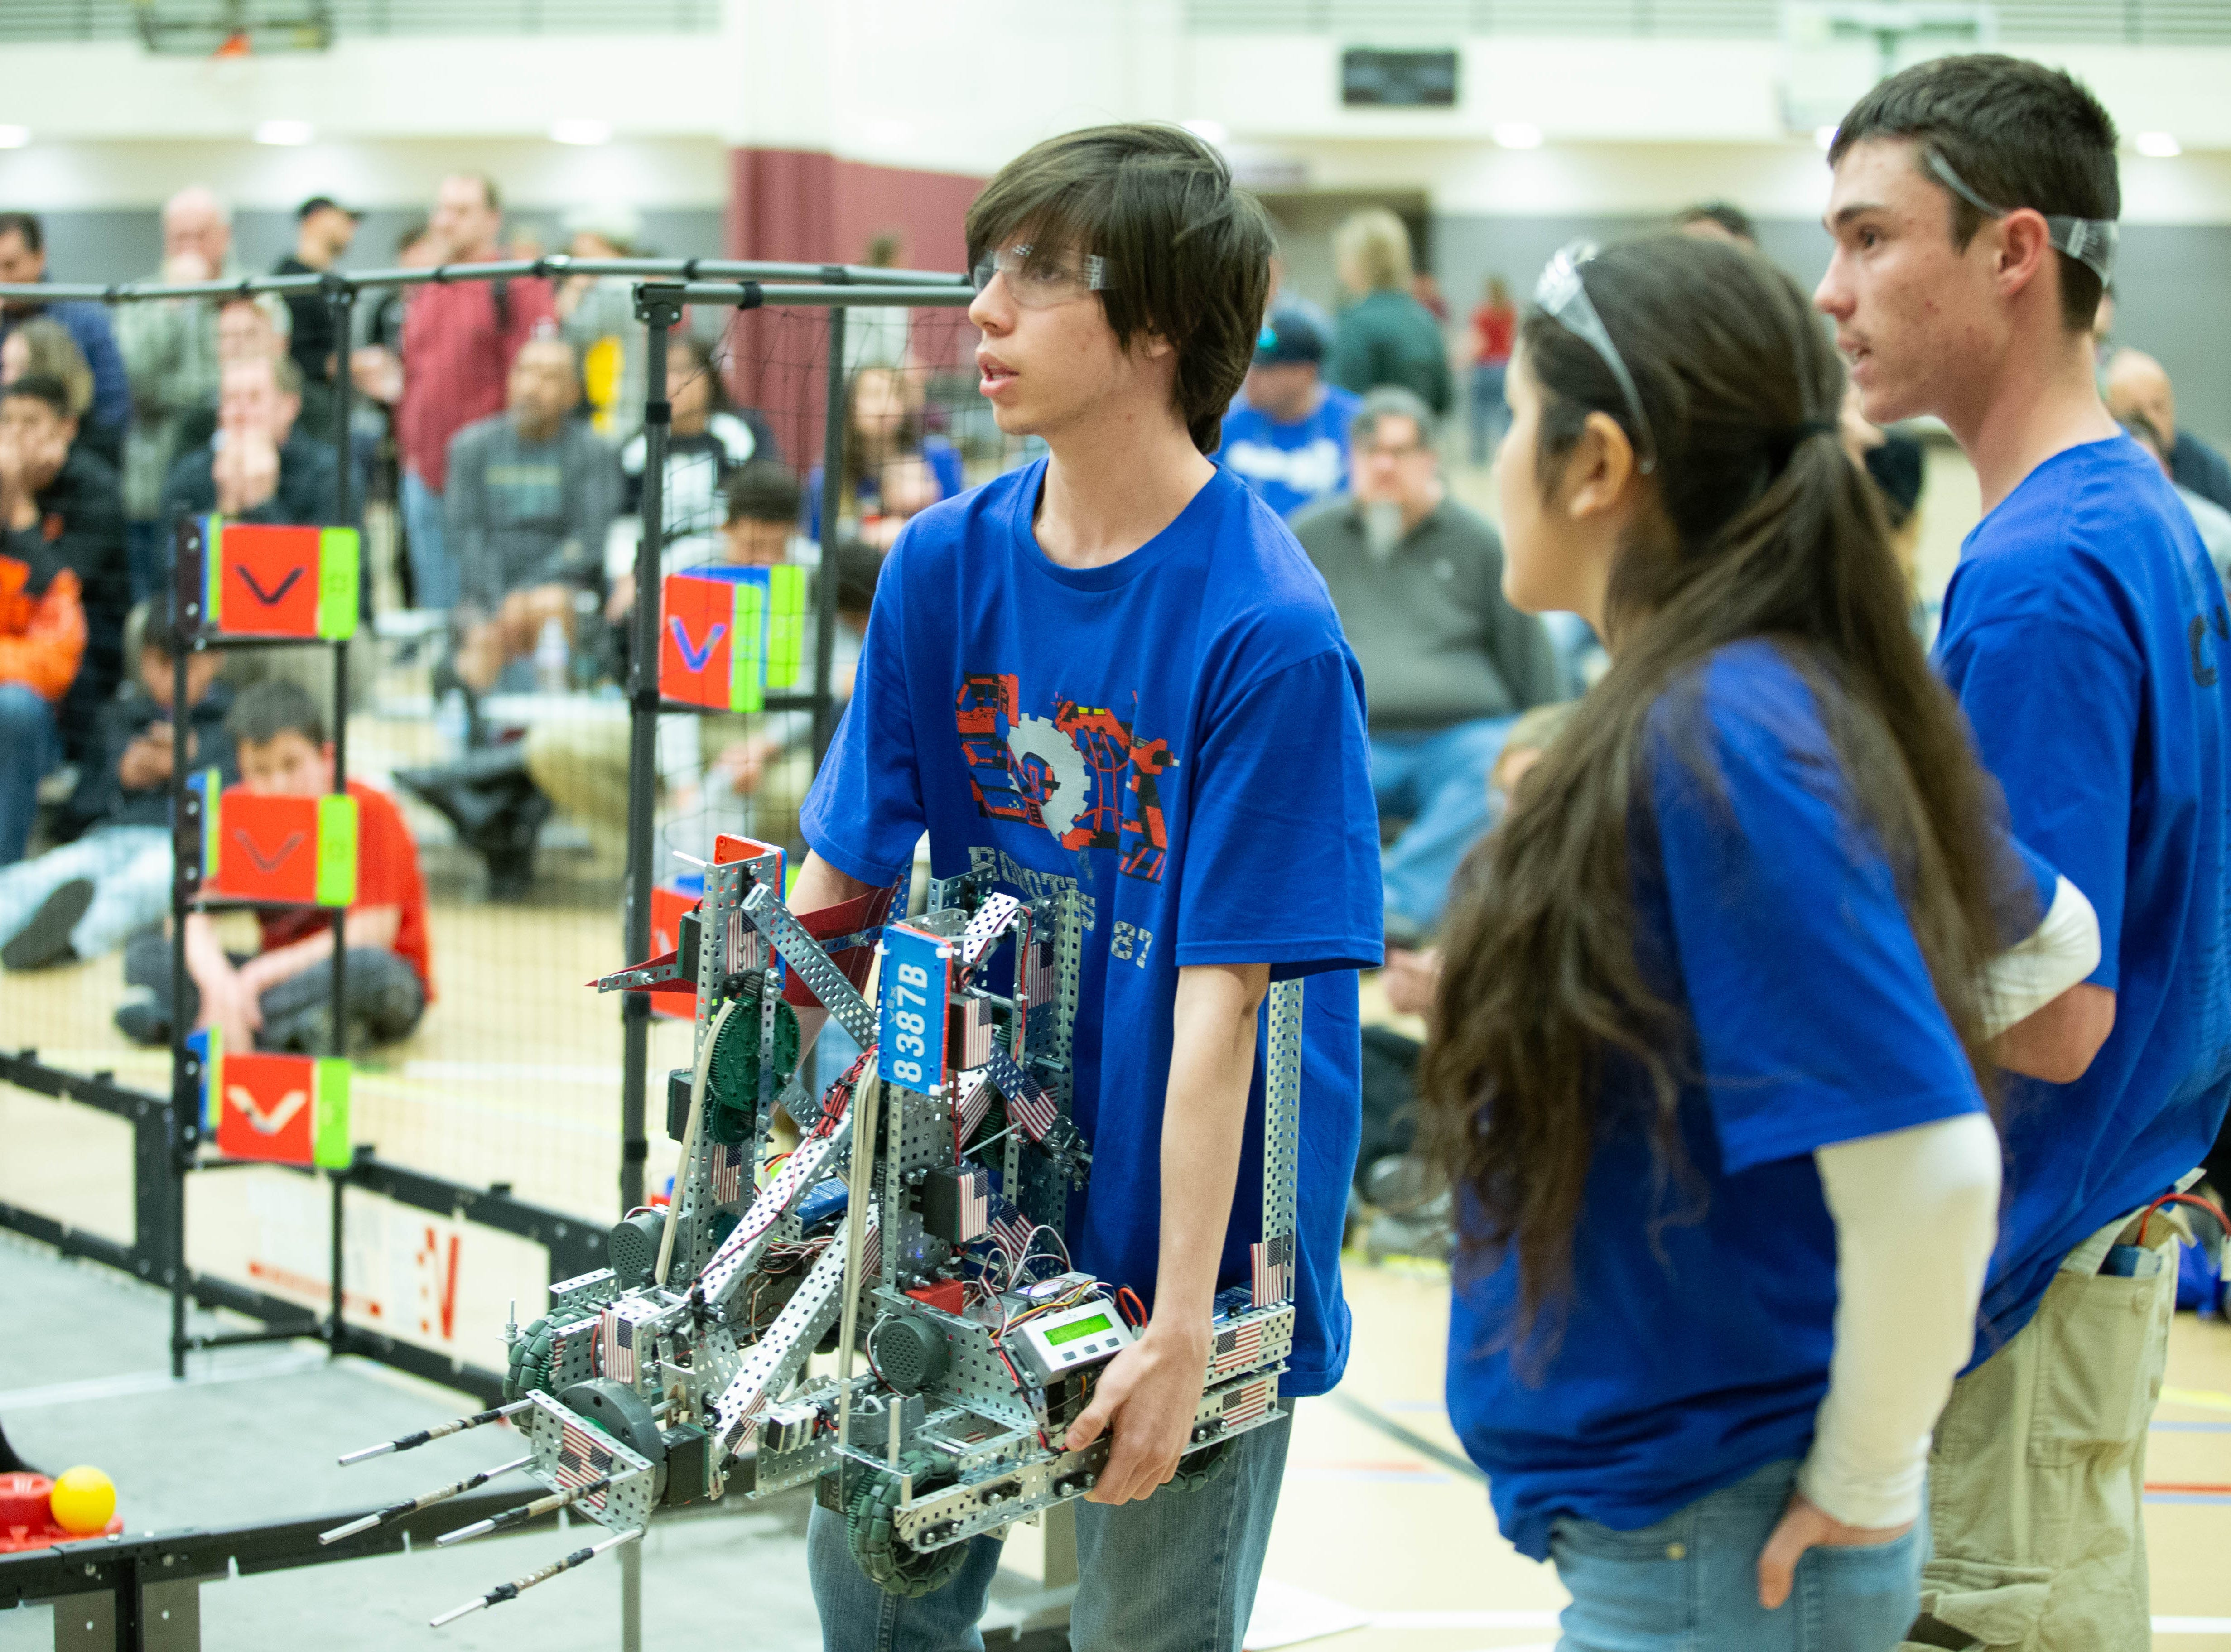 """Sesbastian Saenz, 18, with the School of Dreams Academy, holds a robot named """"Corbin's Girlfriend."""" The VEX Robotics competition for elementary, middle and high school students held on the NMSU campus on February 16, 2019."""